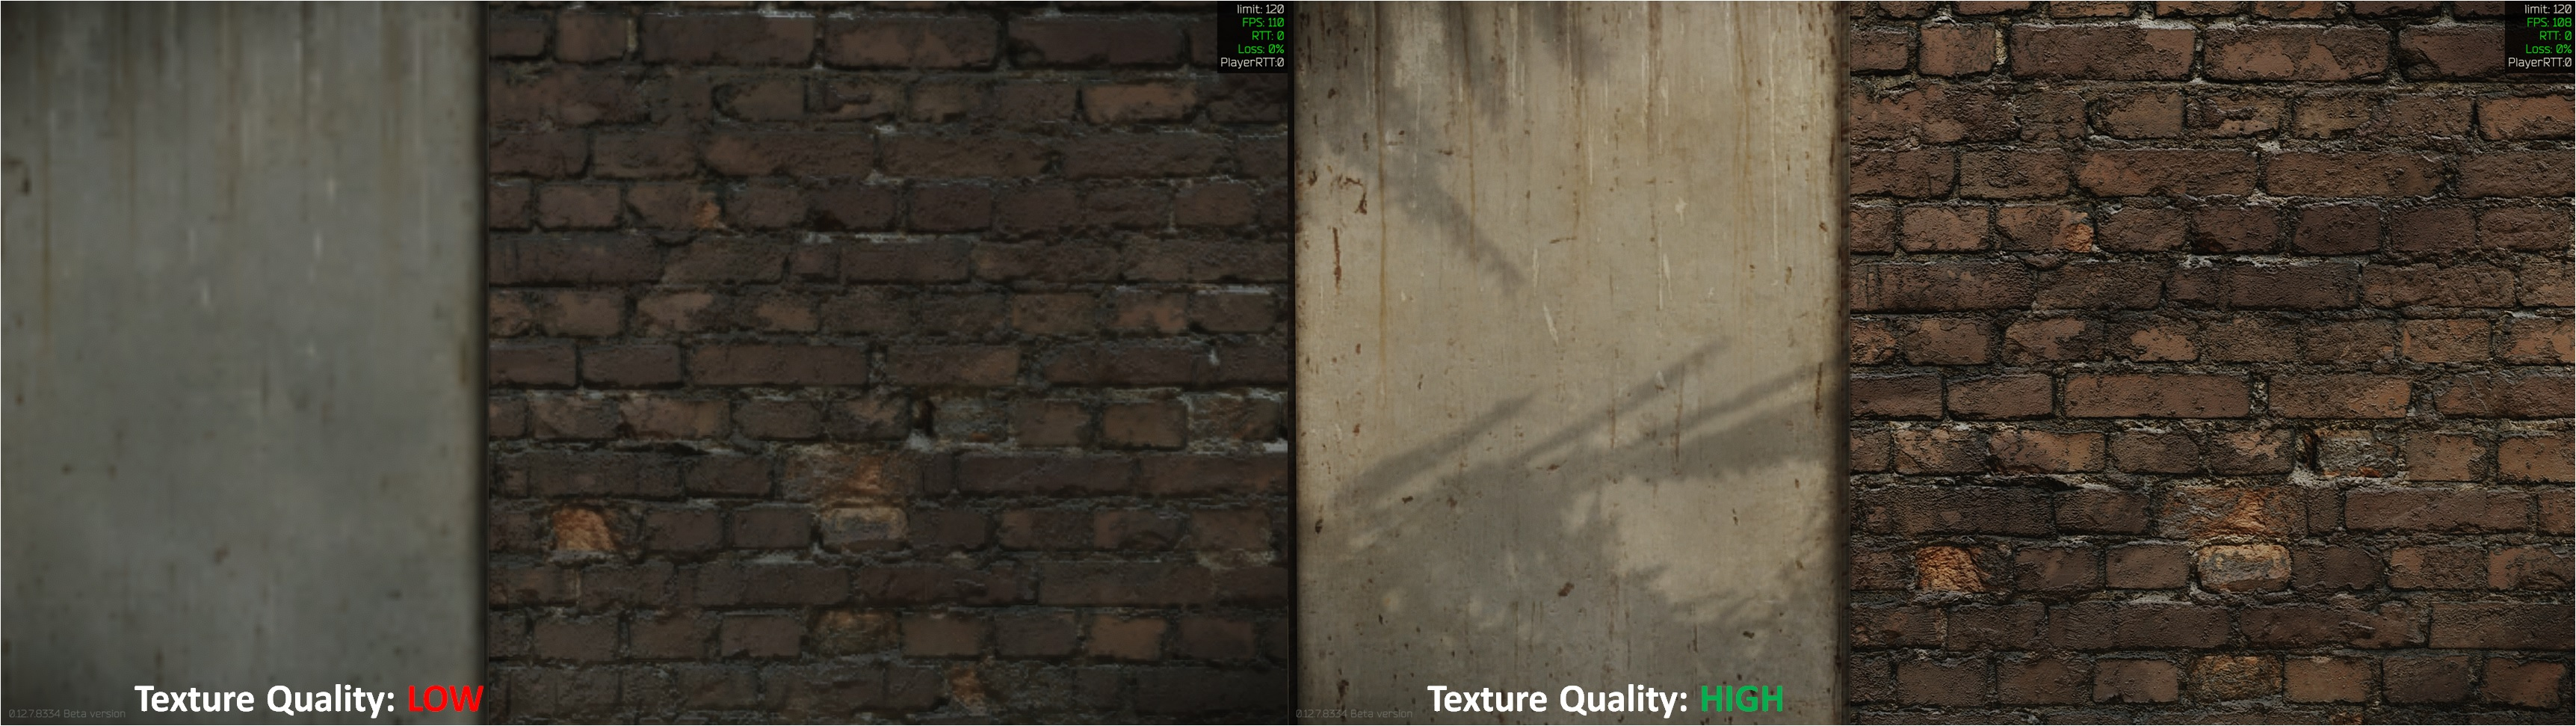 Tarkov Texture Quality Comparison